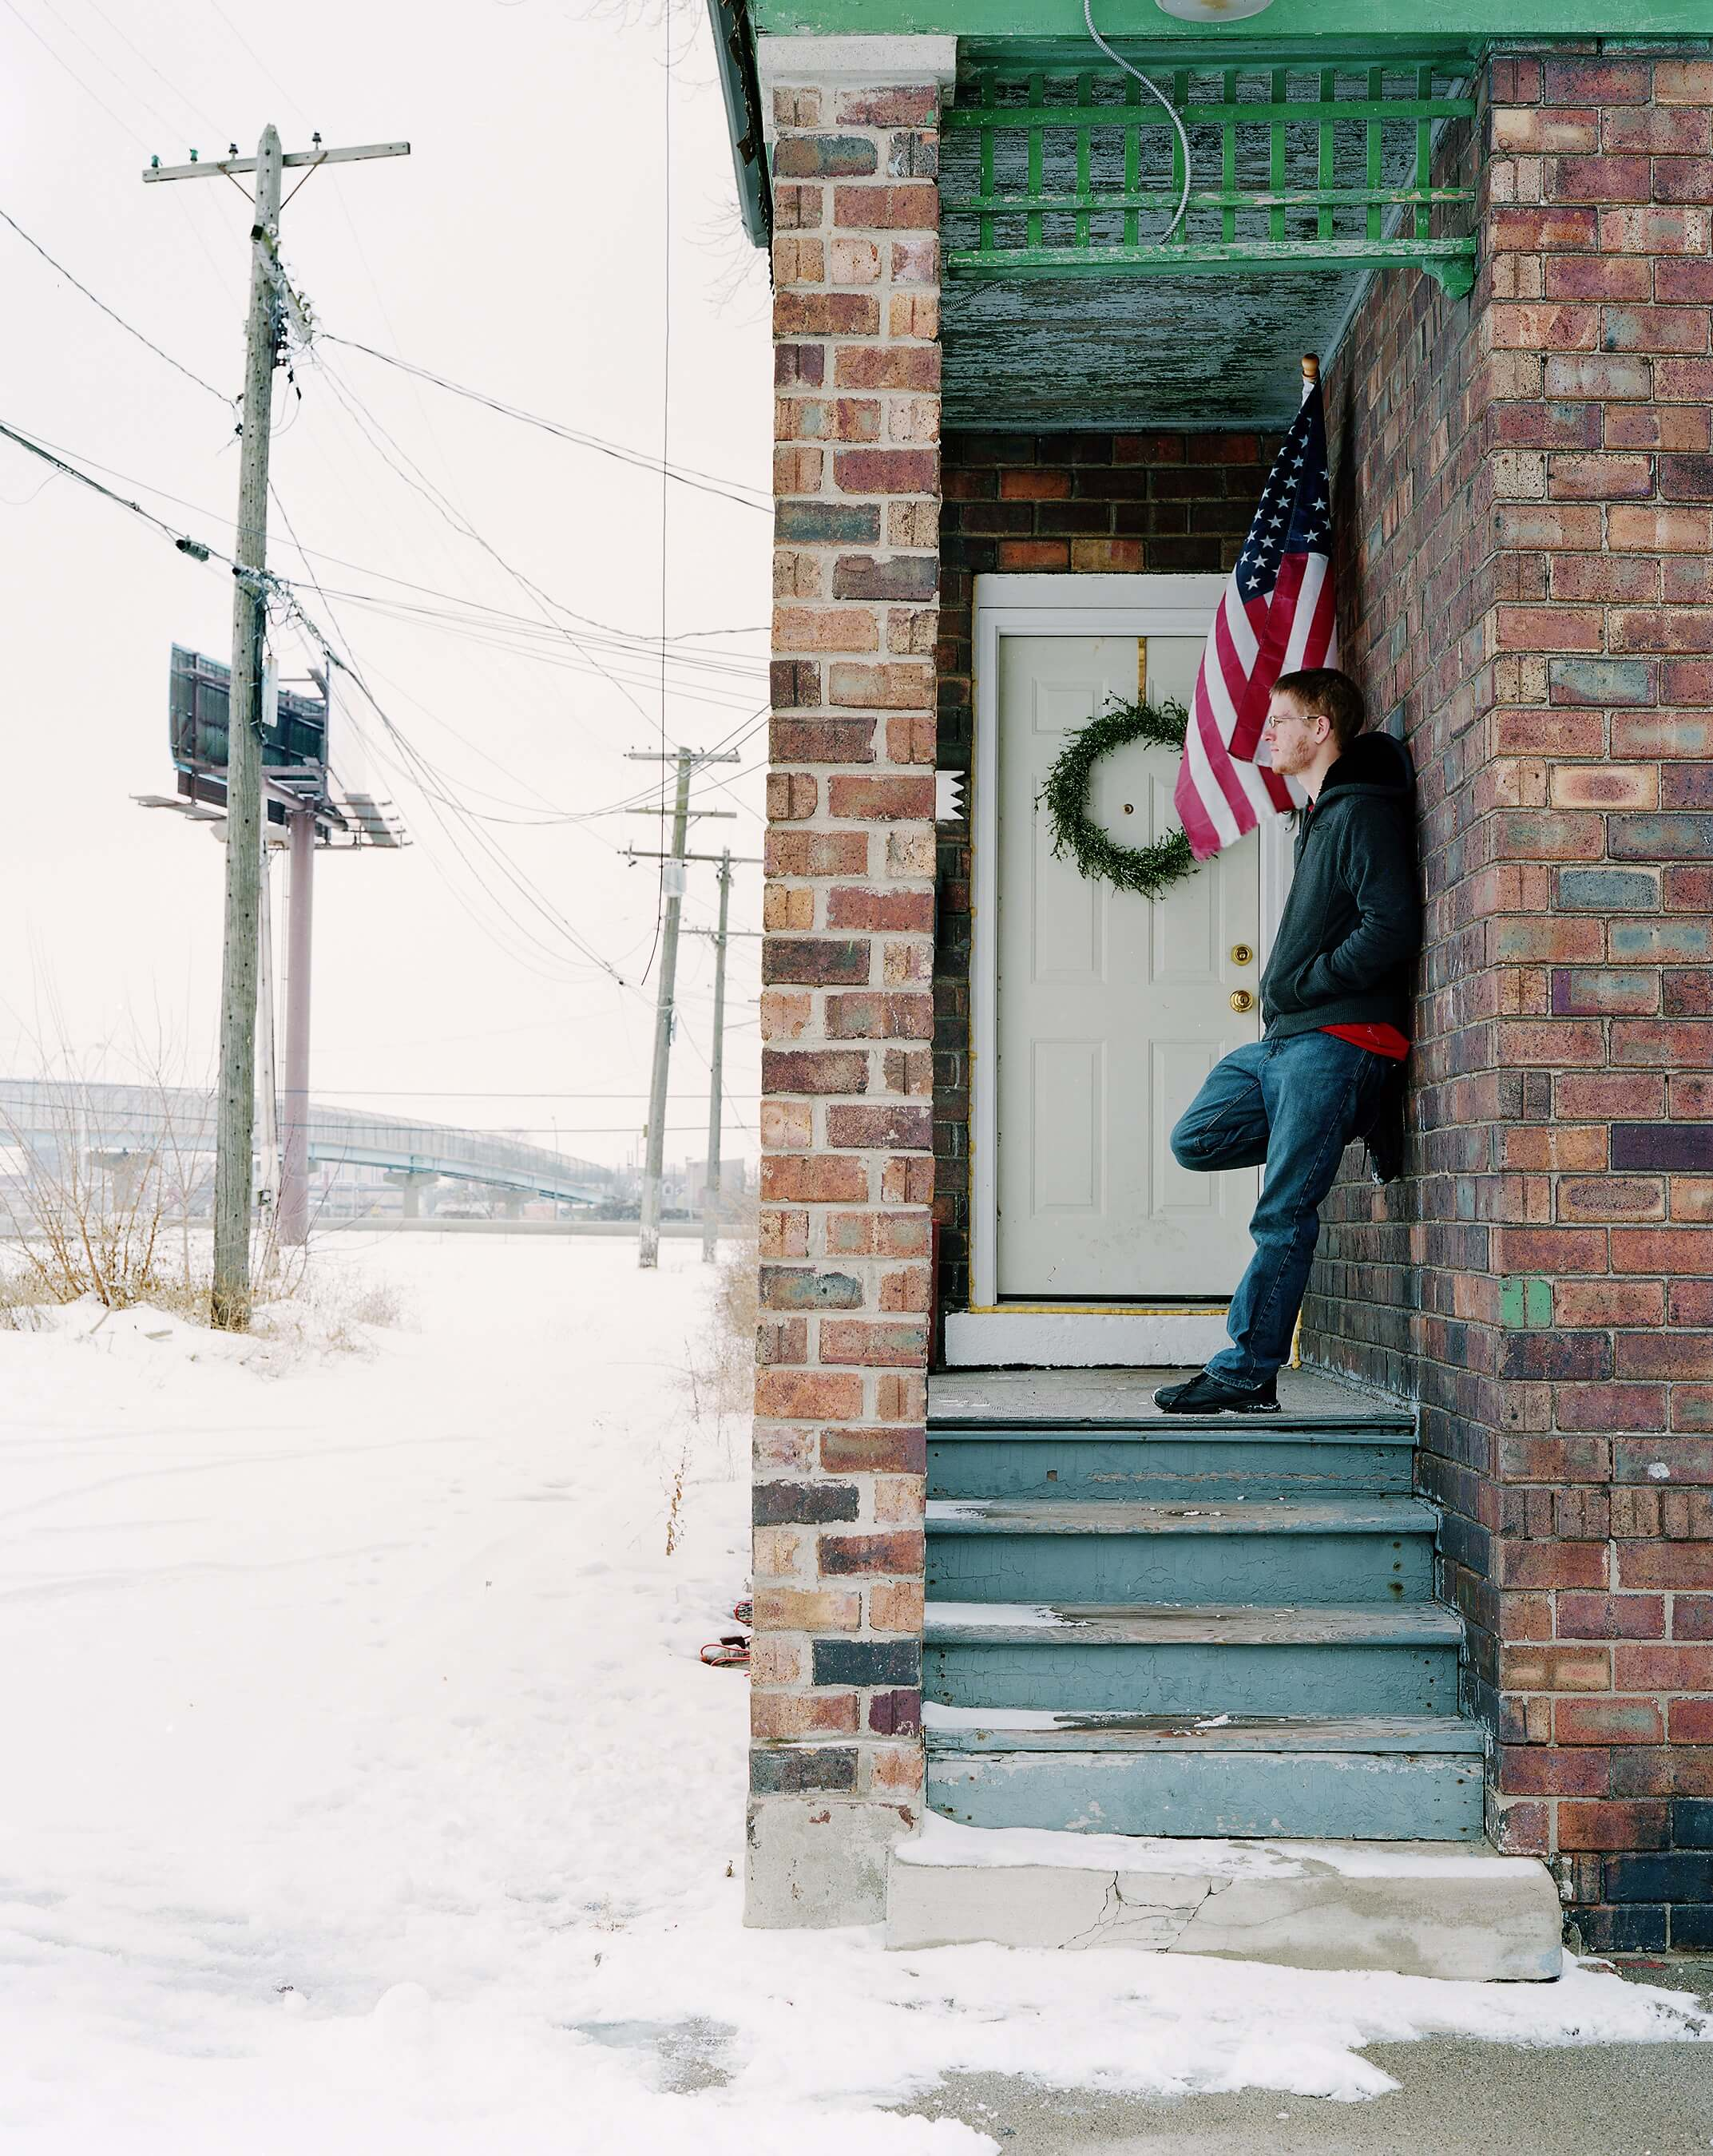 New Years Day, Detroit, MI, 2011 by Daniel Farnum